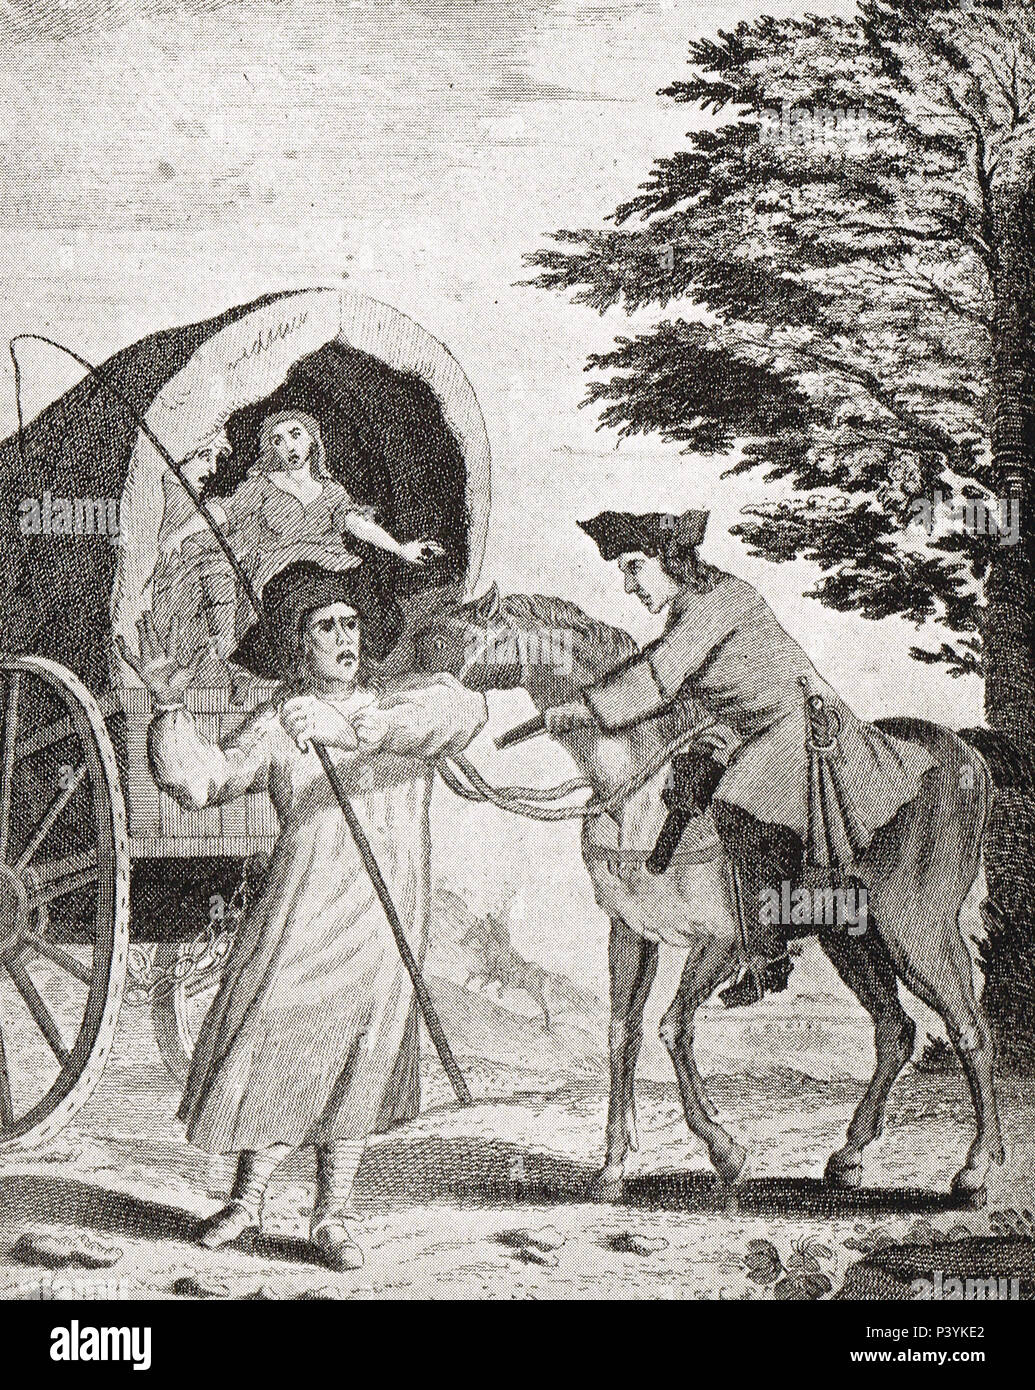 Highwayman John Cottington, robbing the Oxford Wagon, alias Mull Sack or Mulled Sack, named after his favourite drink - Stock Image